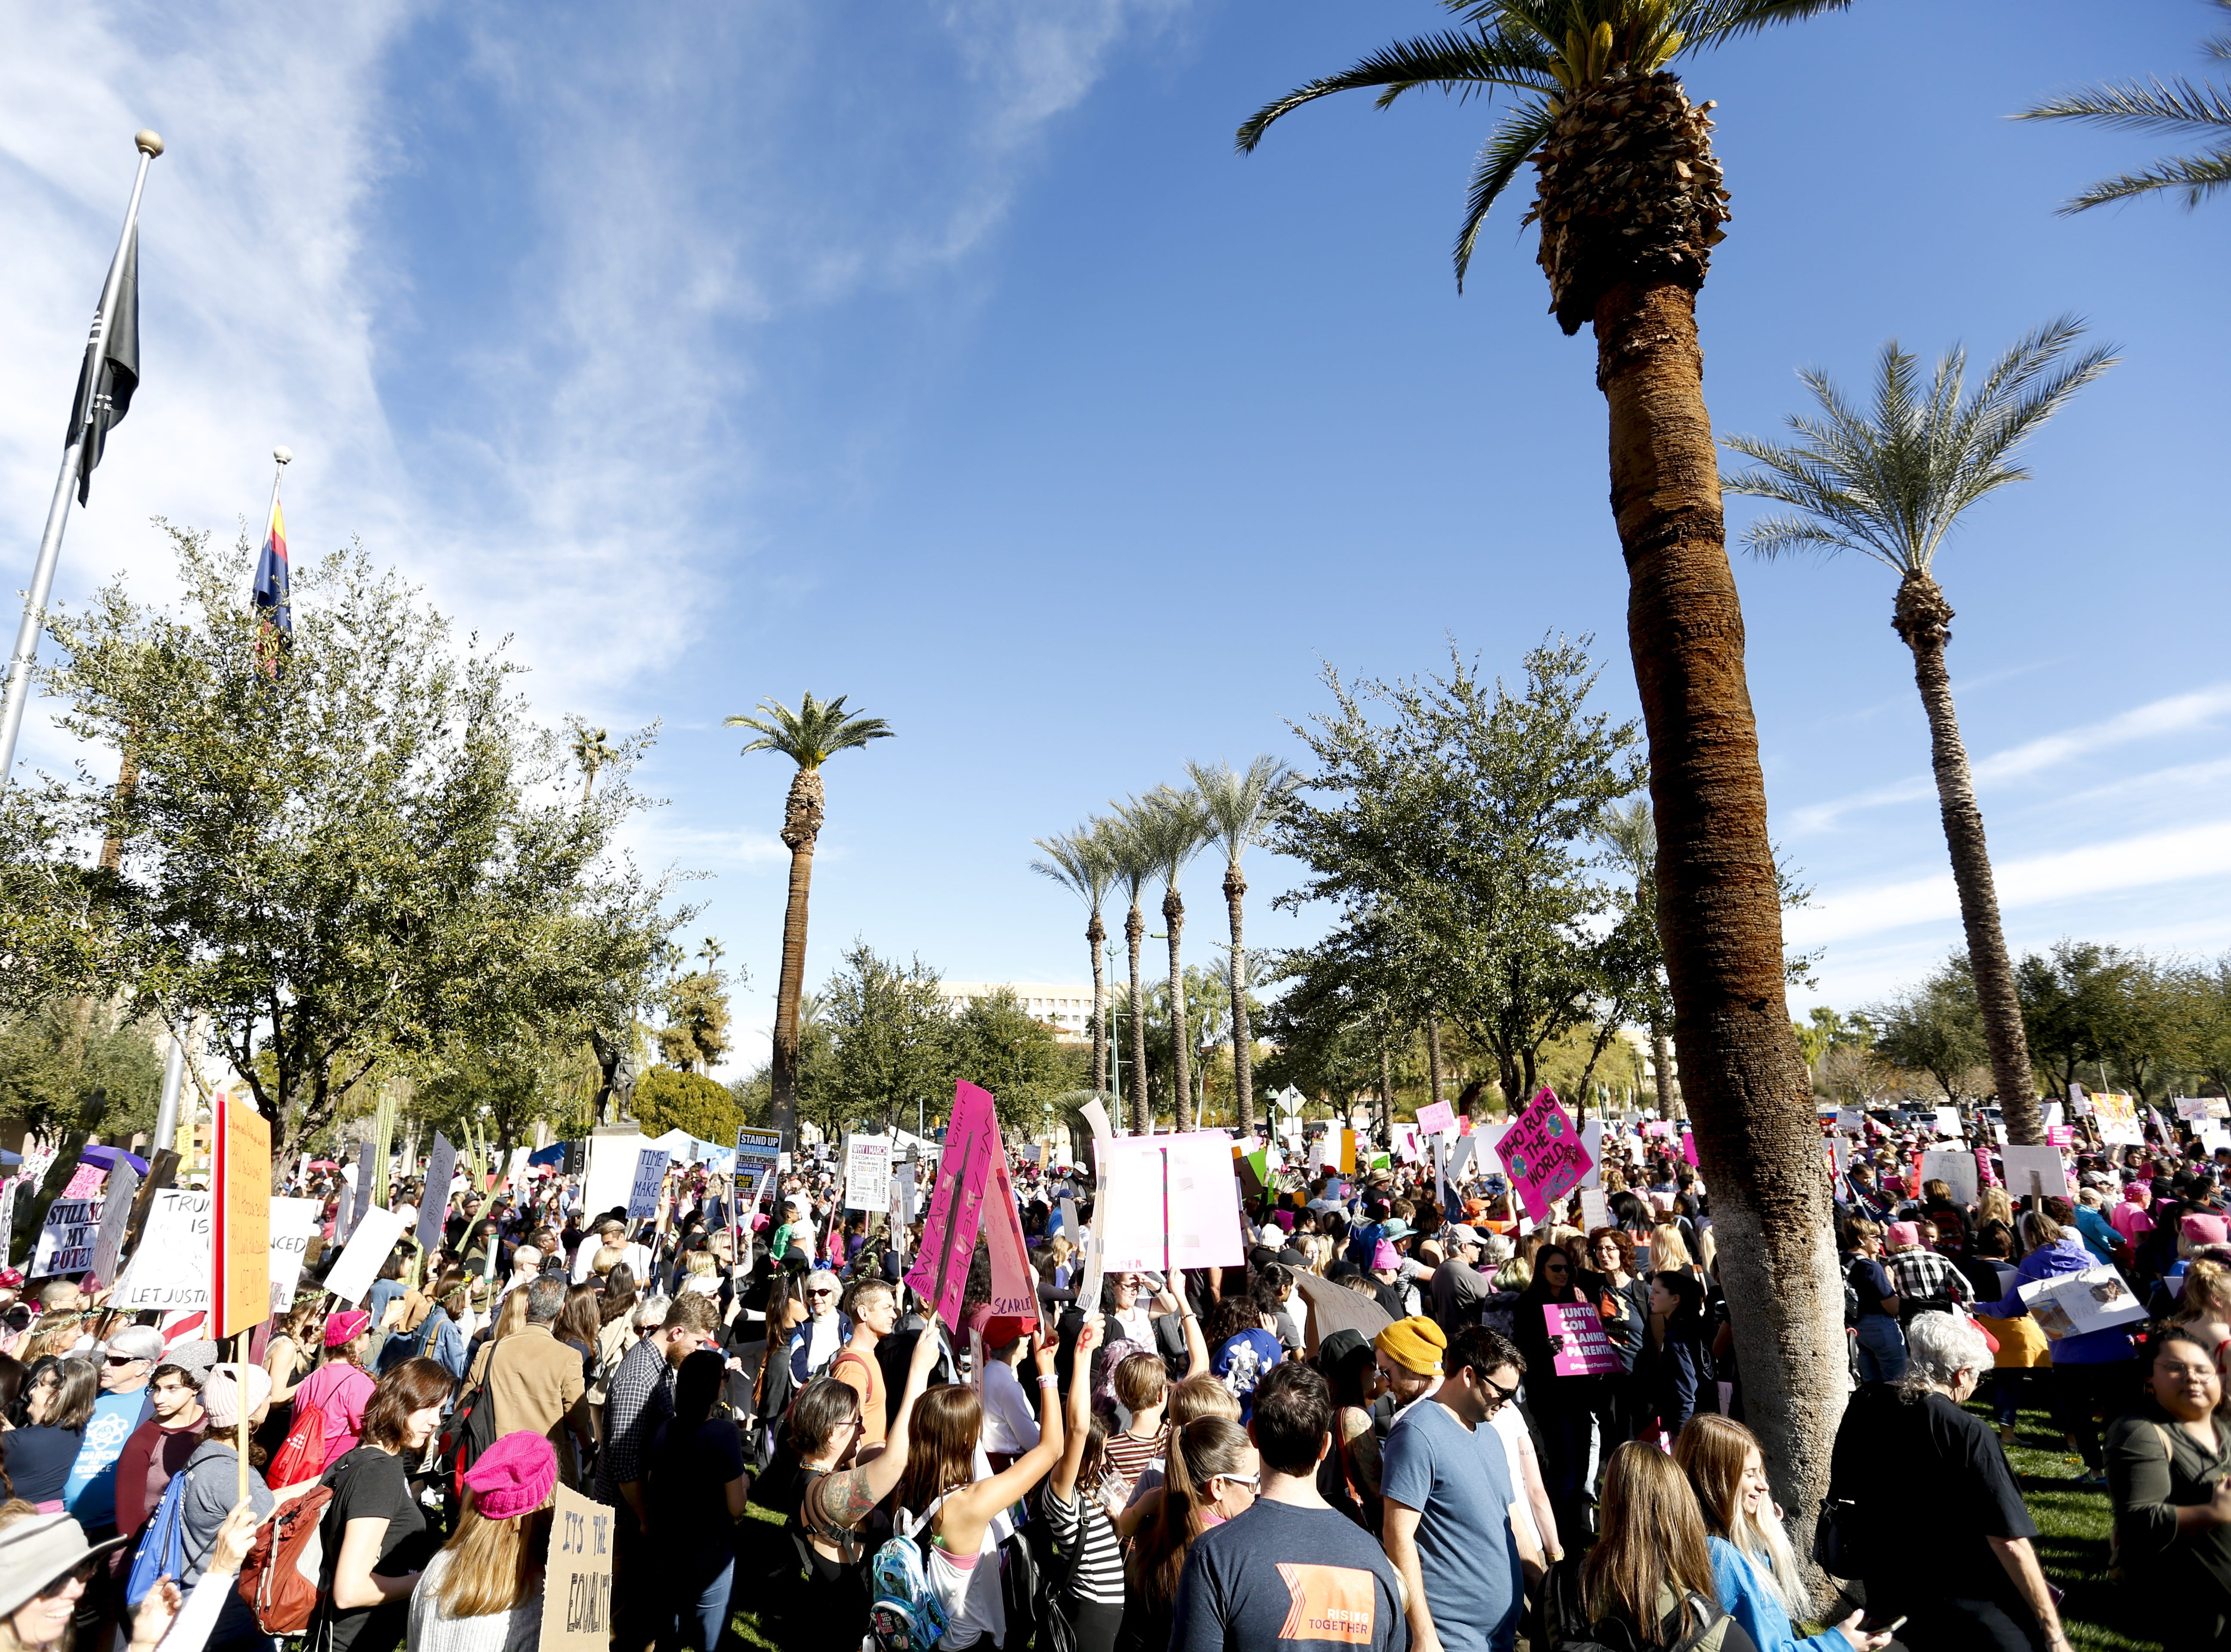 After the speakers finish, the crowd makes its way toward the street to begin marching at Phoenix Women's March on Jan. 19, 2019, at the Arizona Capitol.